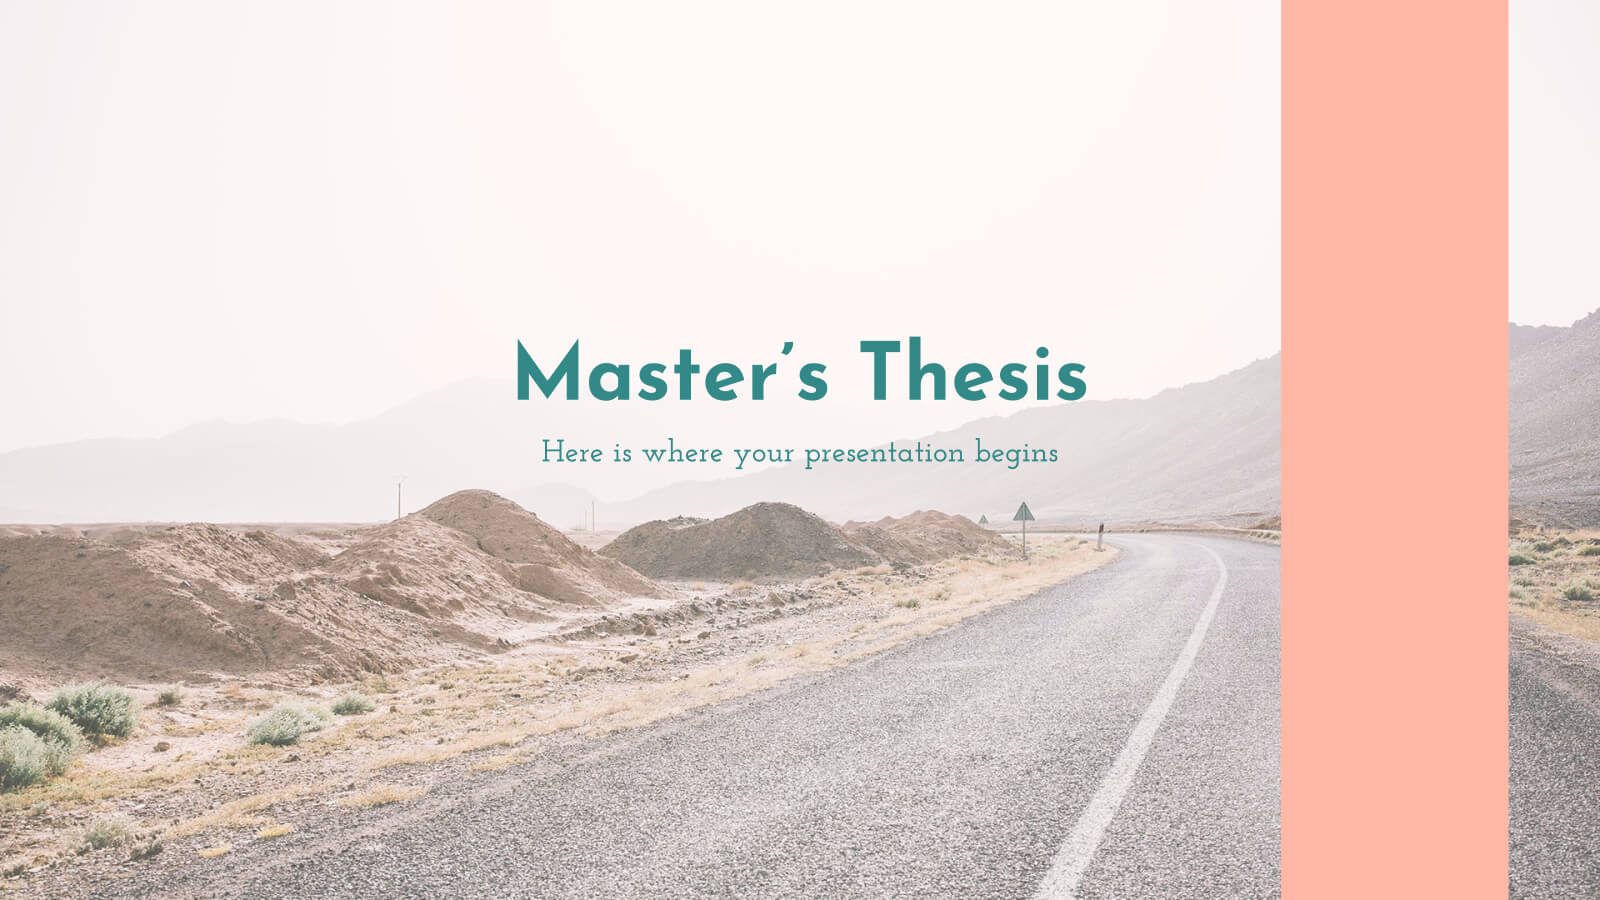 Master's Thesis - Free Presentation Template For Google throughout Powerpoint Templates For Thesis Defense